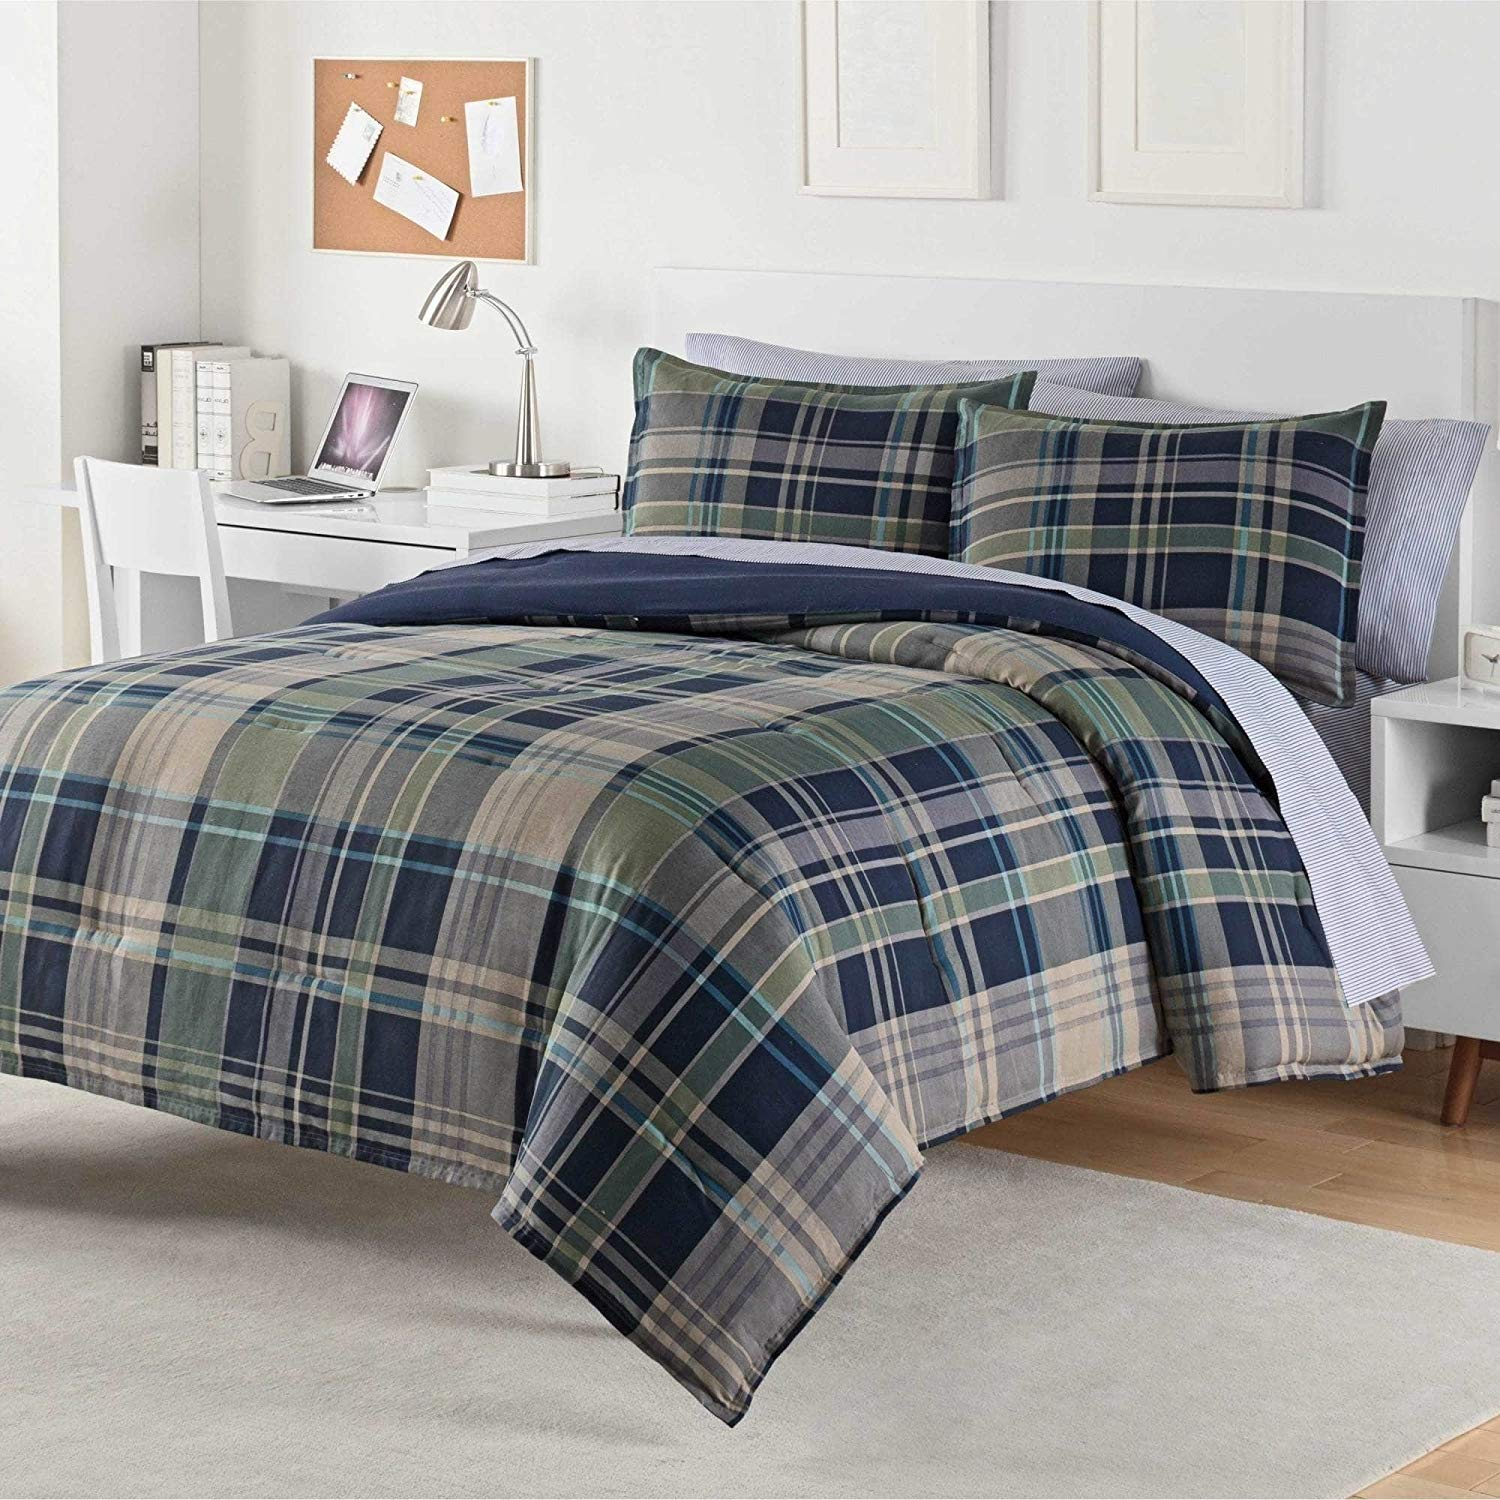 3 Piece Blue Green Grey Plaid Pattern Comforter King Set, Elegant Luxurious Tartan Checkered Design, Solid Reversible Bedding, Classic Mid-Century Style, Super Soft & Cozy, Cotton, For Unisex